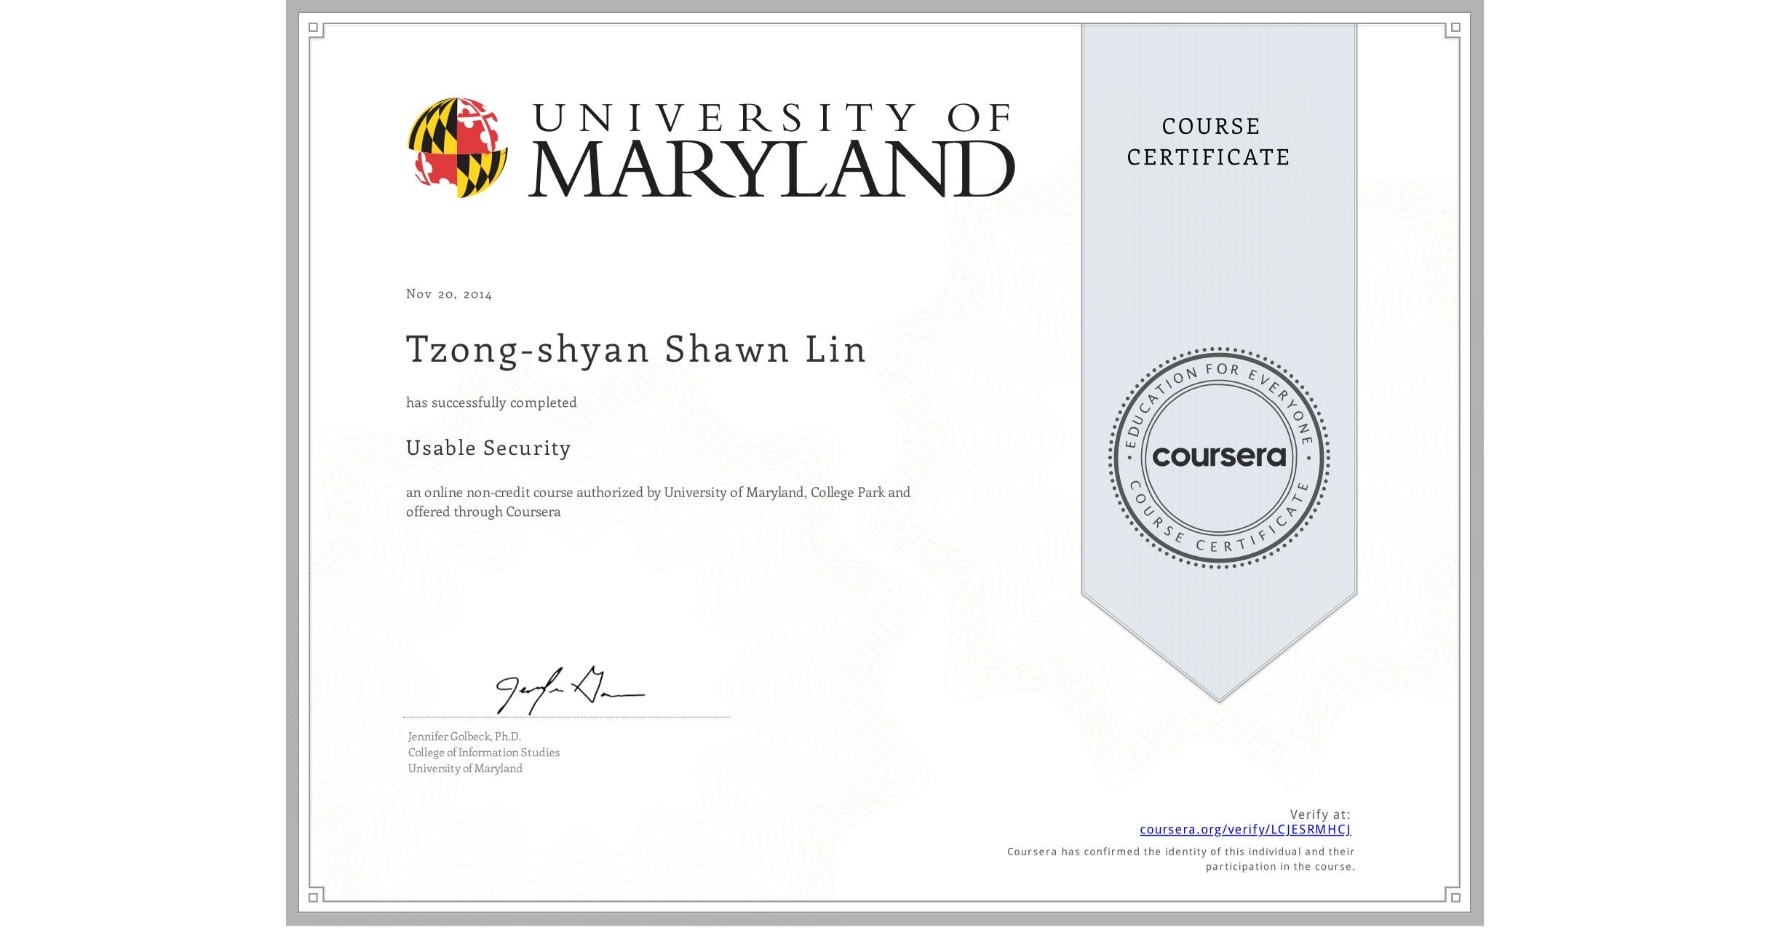 View certificate for Tzong-shyan Shawn Lin, Usable Security, an online non-credit course authorized by University of Maryland, College Park and offered through Coursera